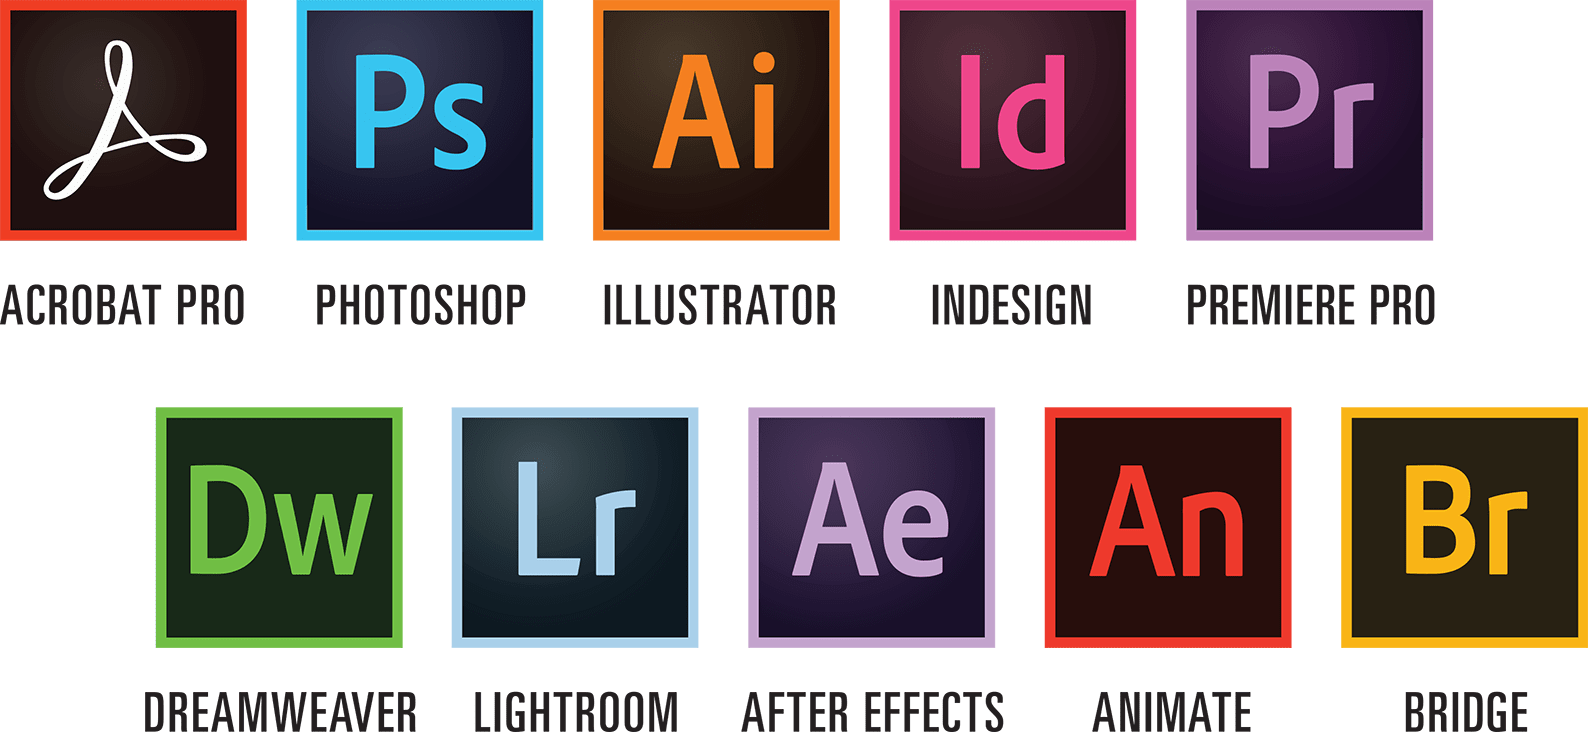 Adobe Photo Adobe Creative Cloud